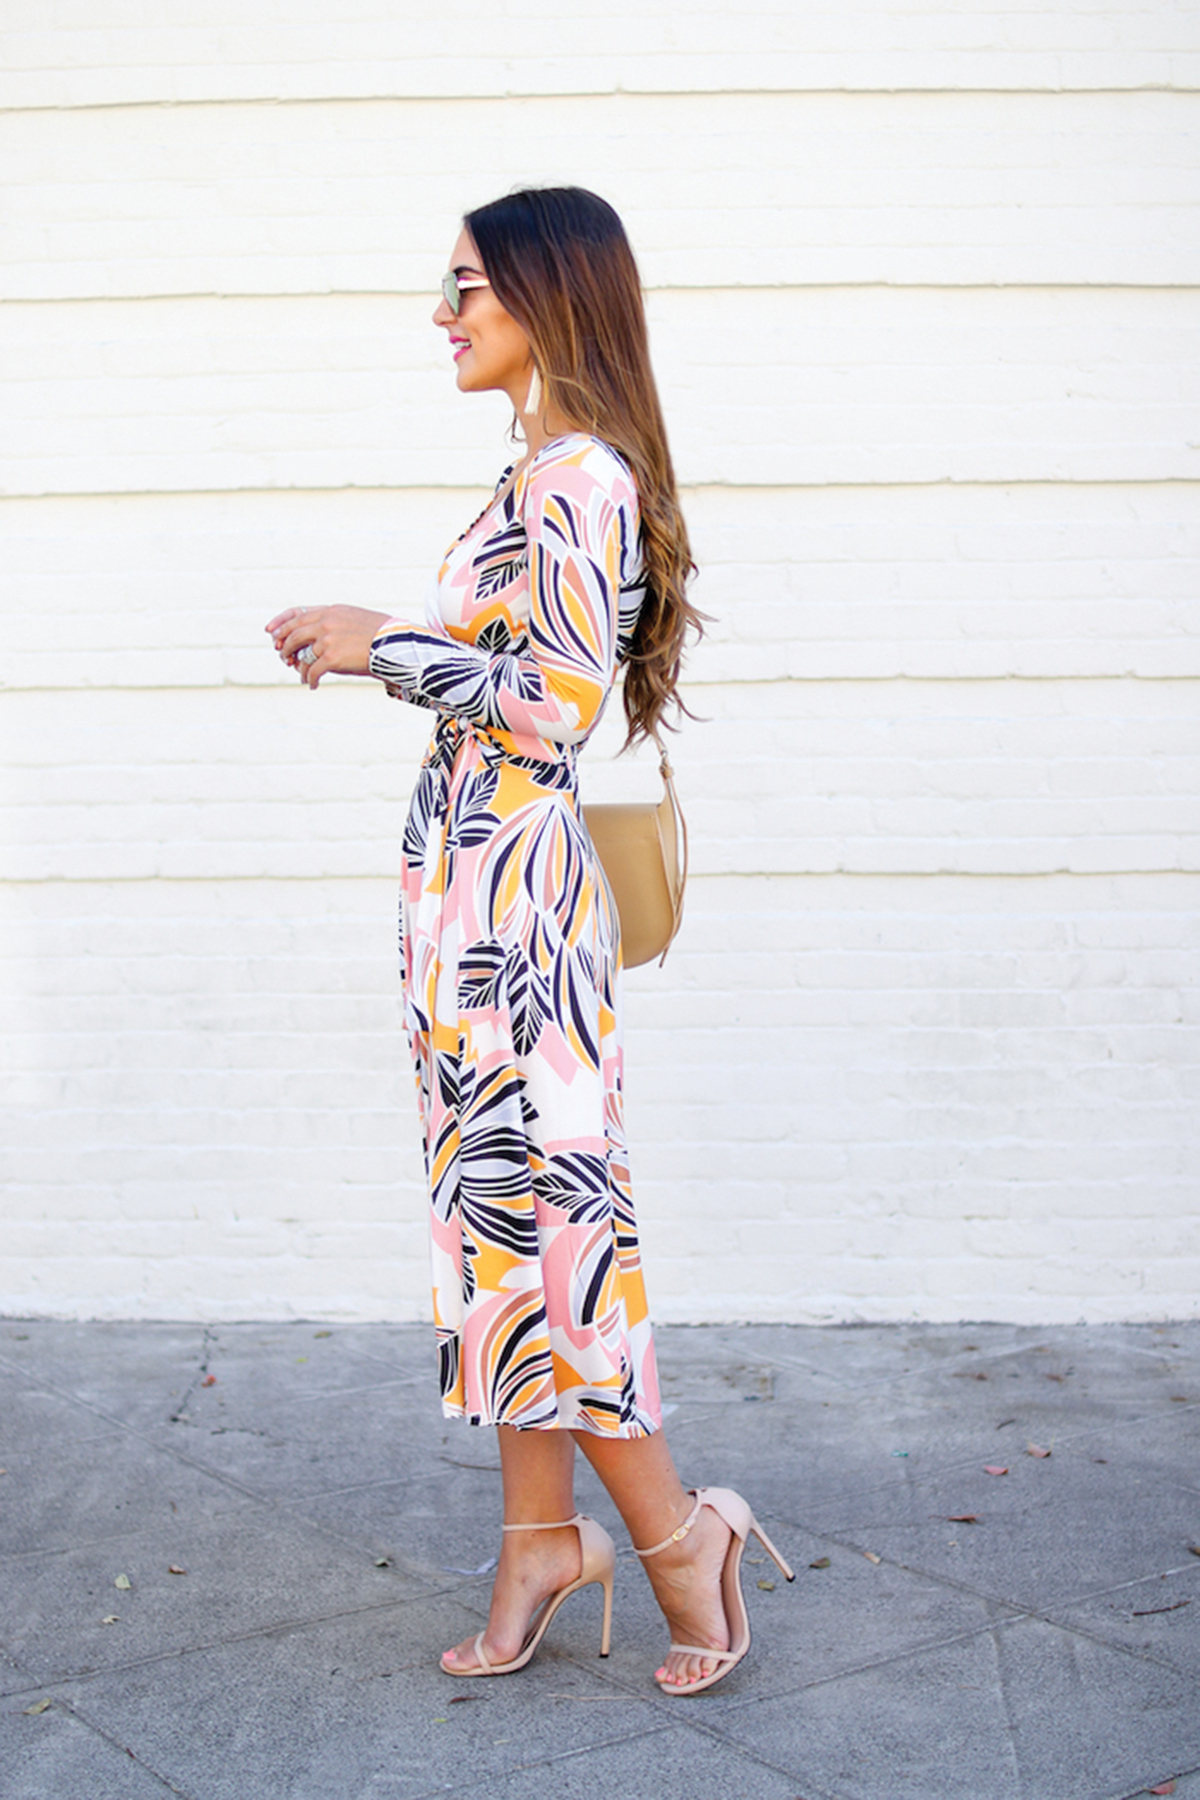 ed3194e5e410a O.C. Blogger Kathleen Barnes Builds Her Brand With Inspiration From ...